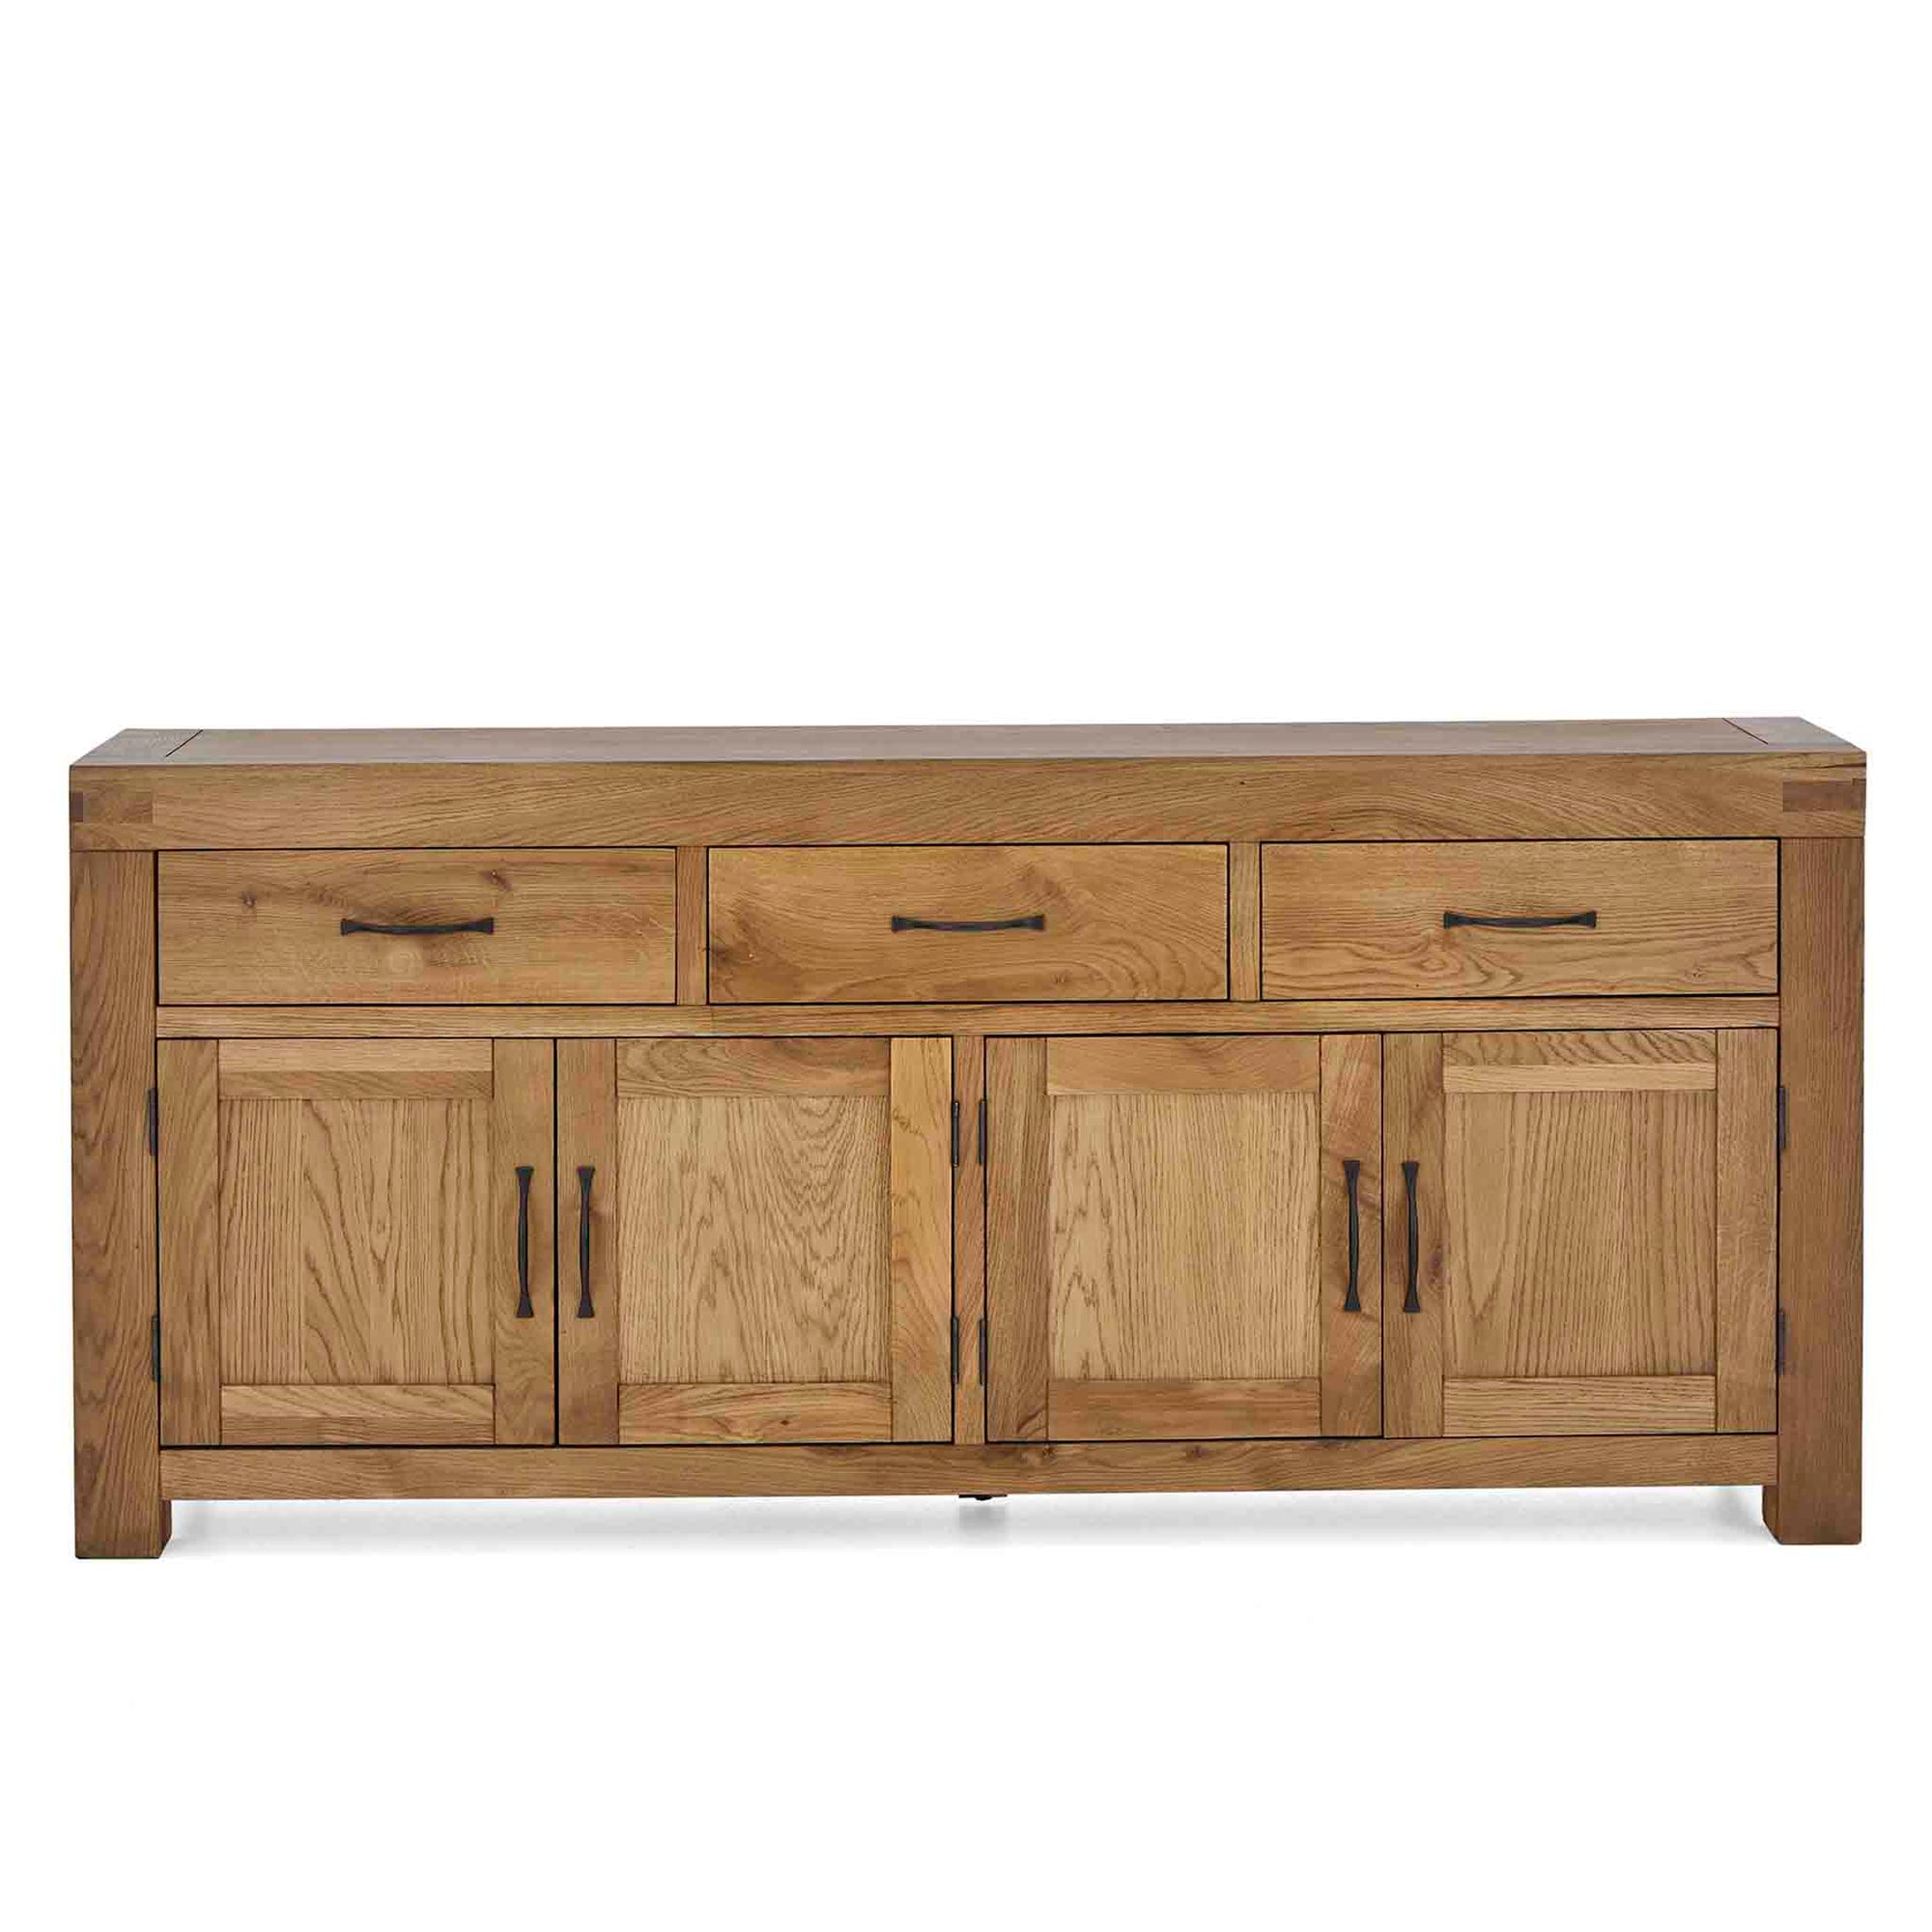 Abbey Grande Extra Large King Oak Sideboard from Roseland Furniture